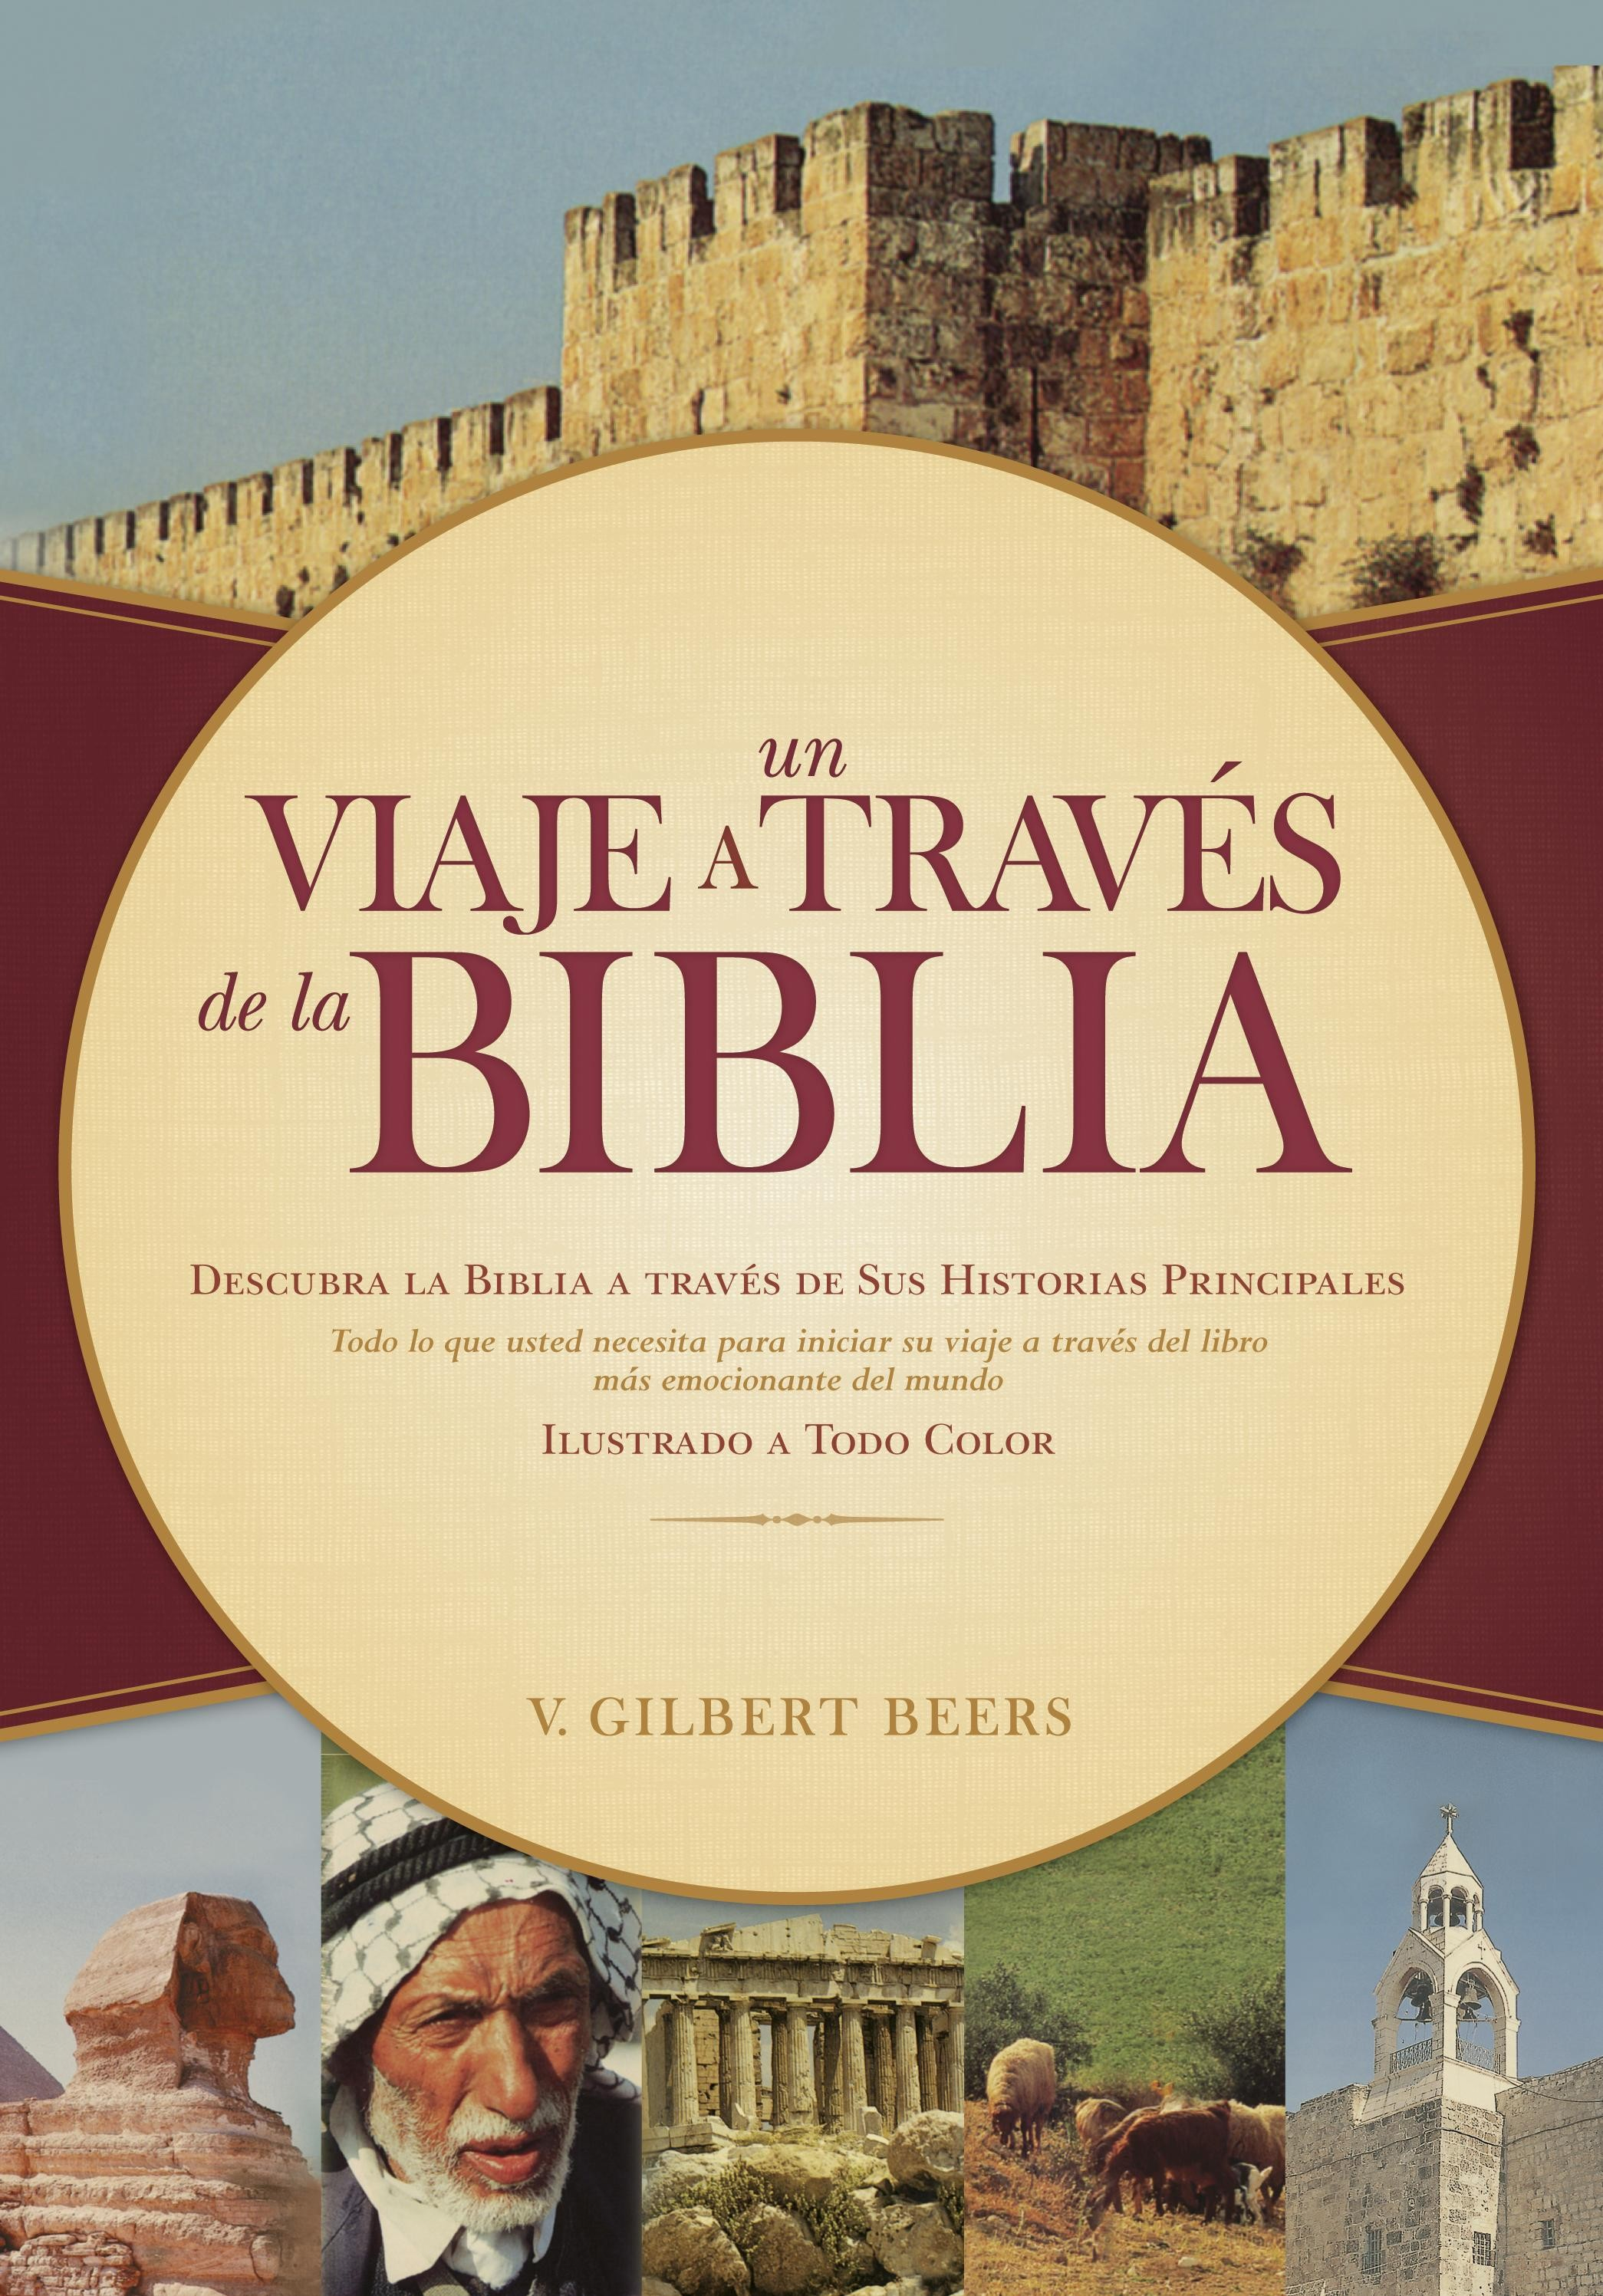 Un Viaje a Través de la Biblia: Journey through the Bible - 9781414324005 - Beers, V. Gilbert